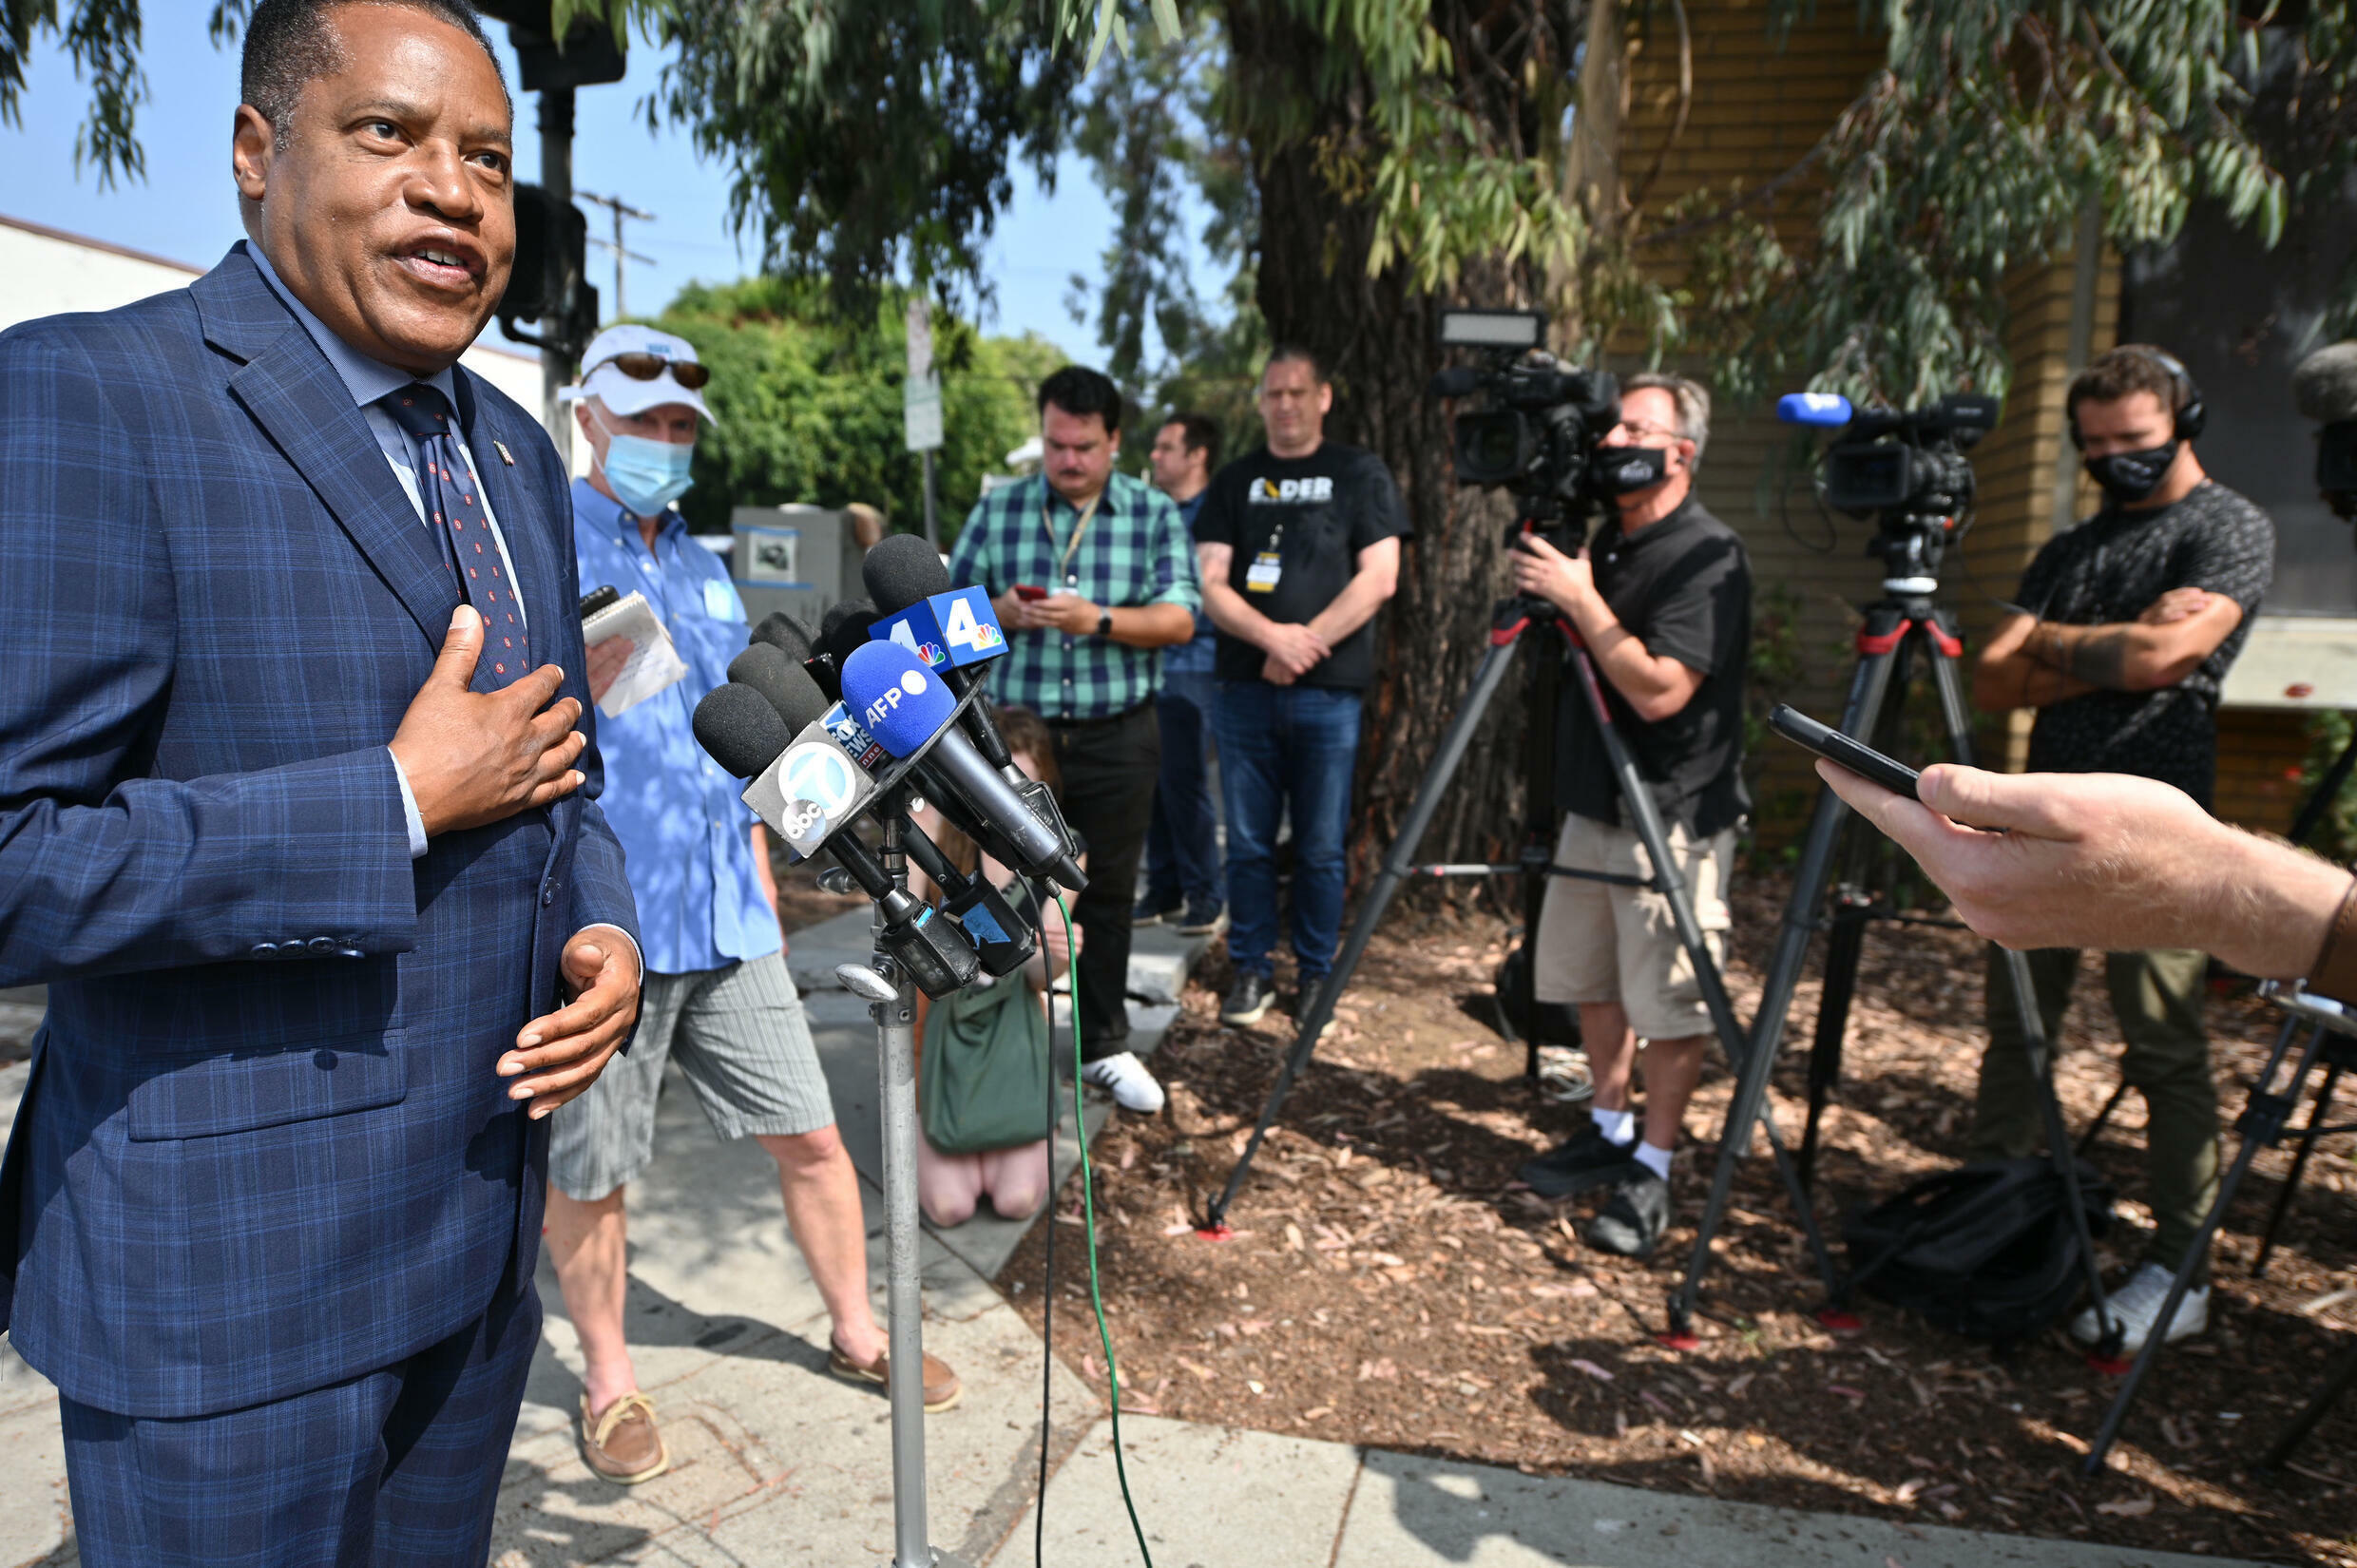 Tory talk show host Larry Elder leads the pack in Republican challengers, though he still rings below 20%